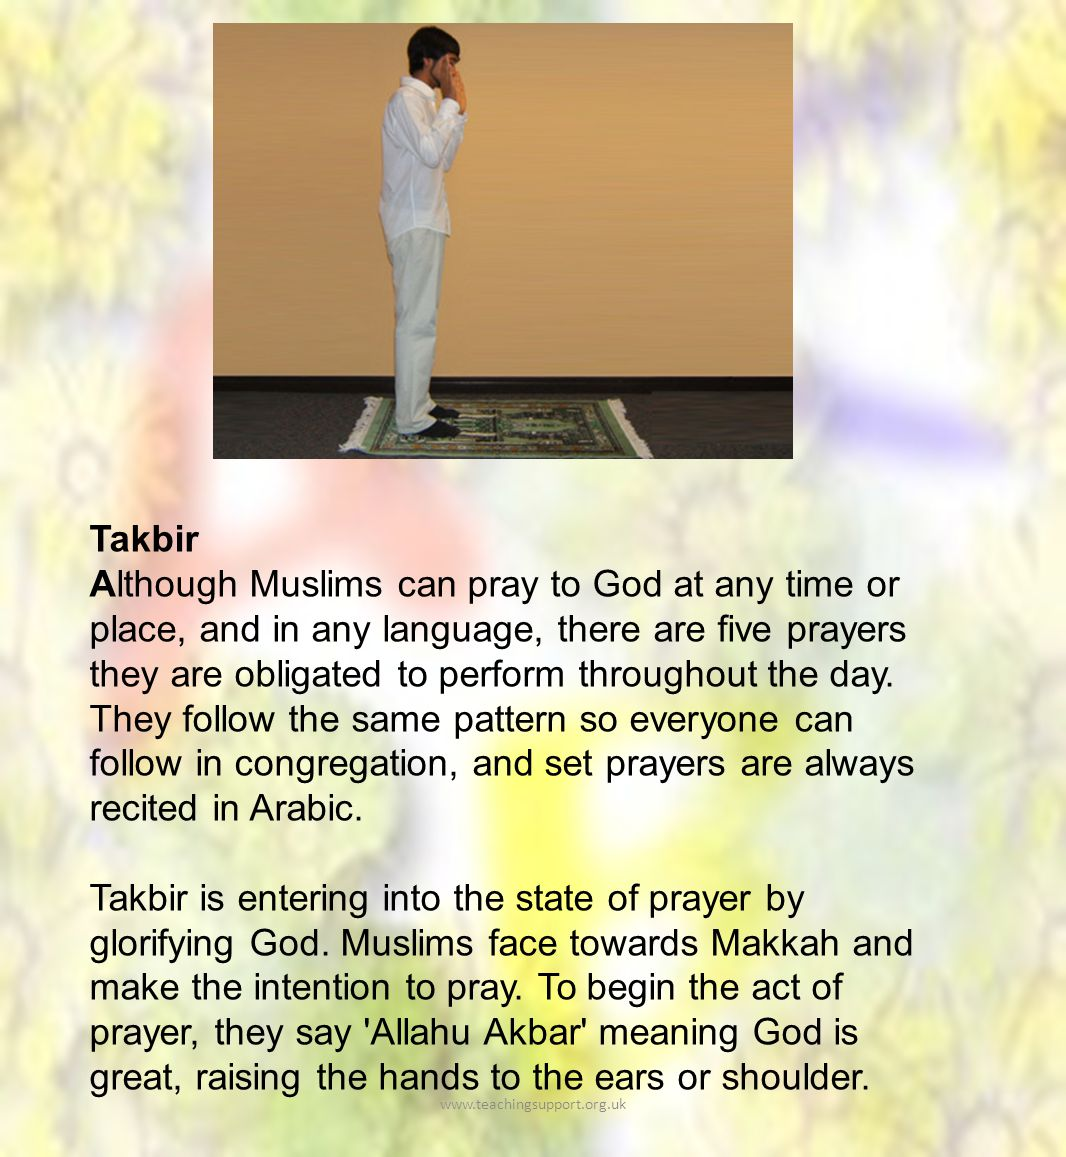 Takbir Although Muslims can pray to God at any time or place, and in any language, there are five prayers they are obligated to perform throughout the day.